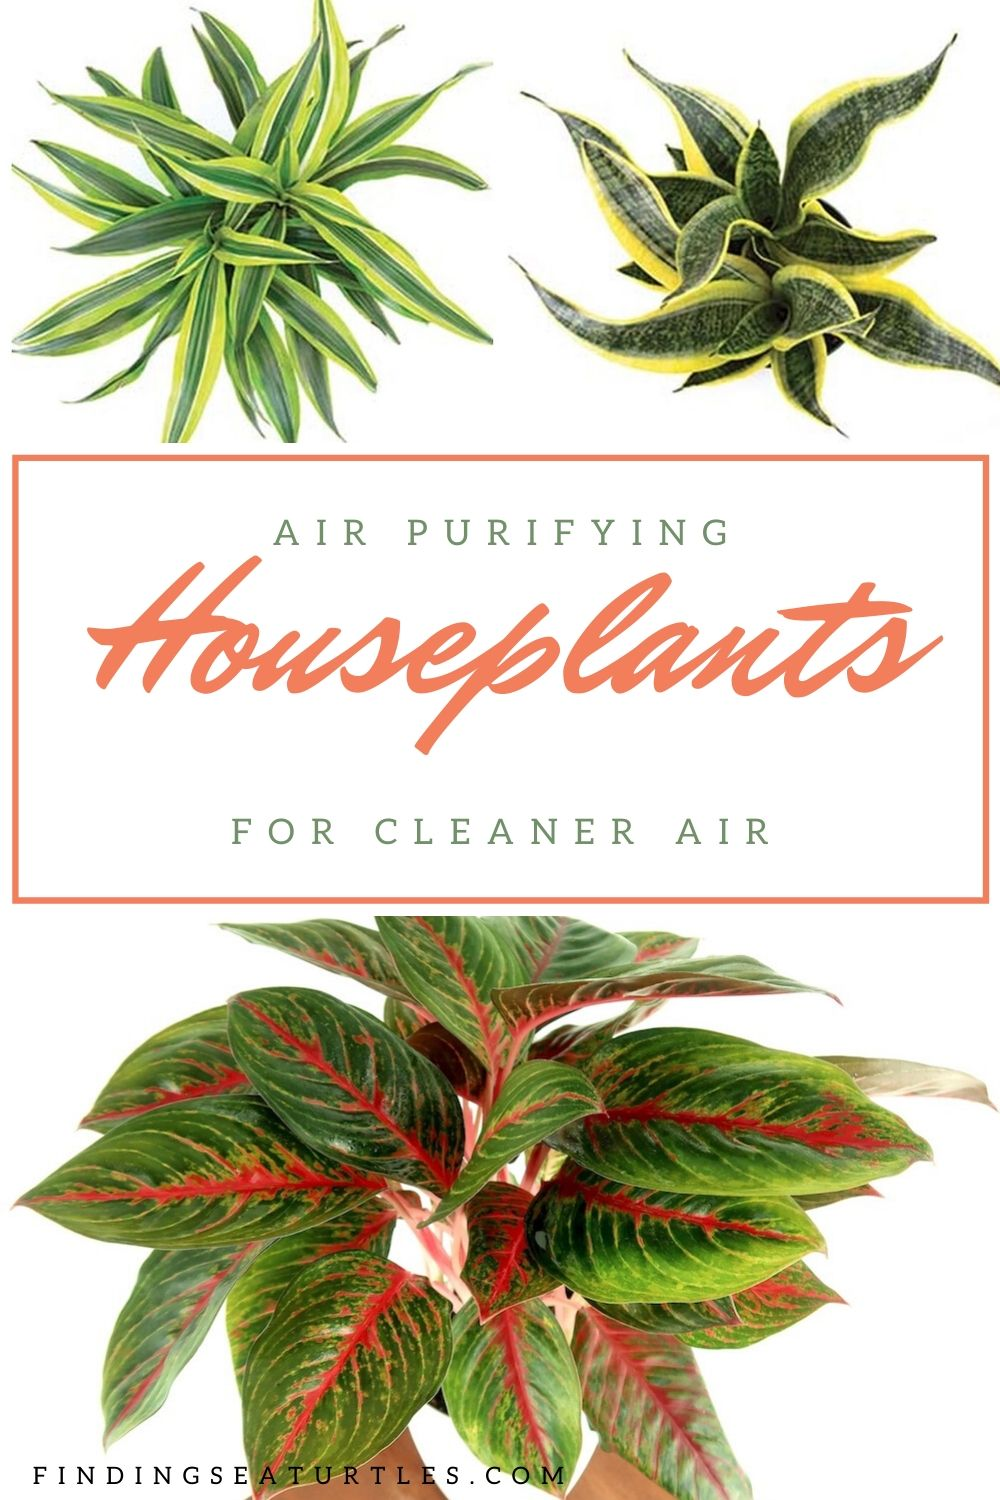 Air purifying Houseplants for Cleaner Air #HousePlants #AirCleaningPlants #AirPurifyingPlants #AirPurifyingHousePlants #IndoorPlants #CleanAir